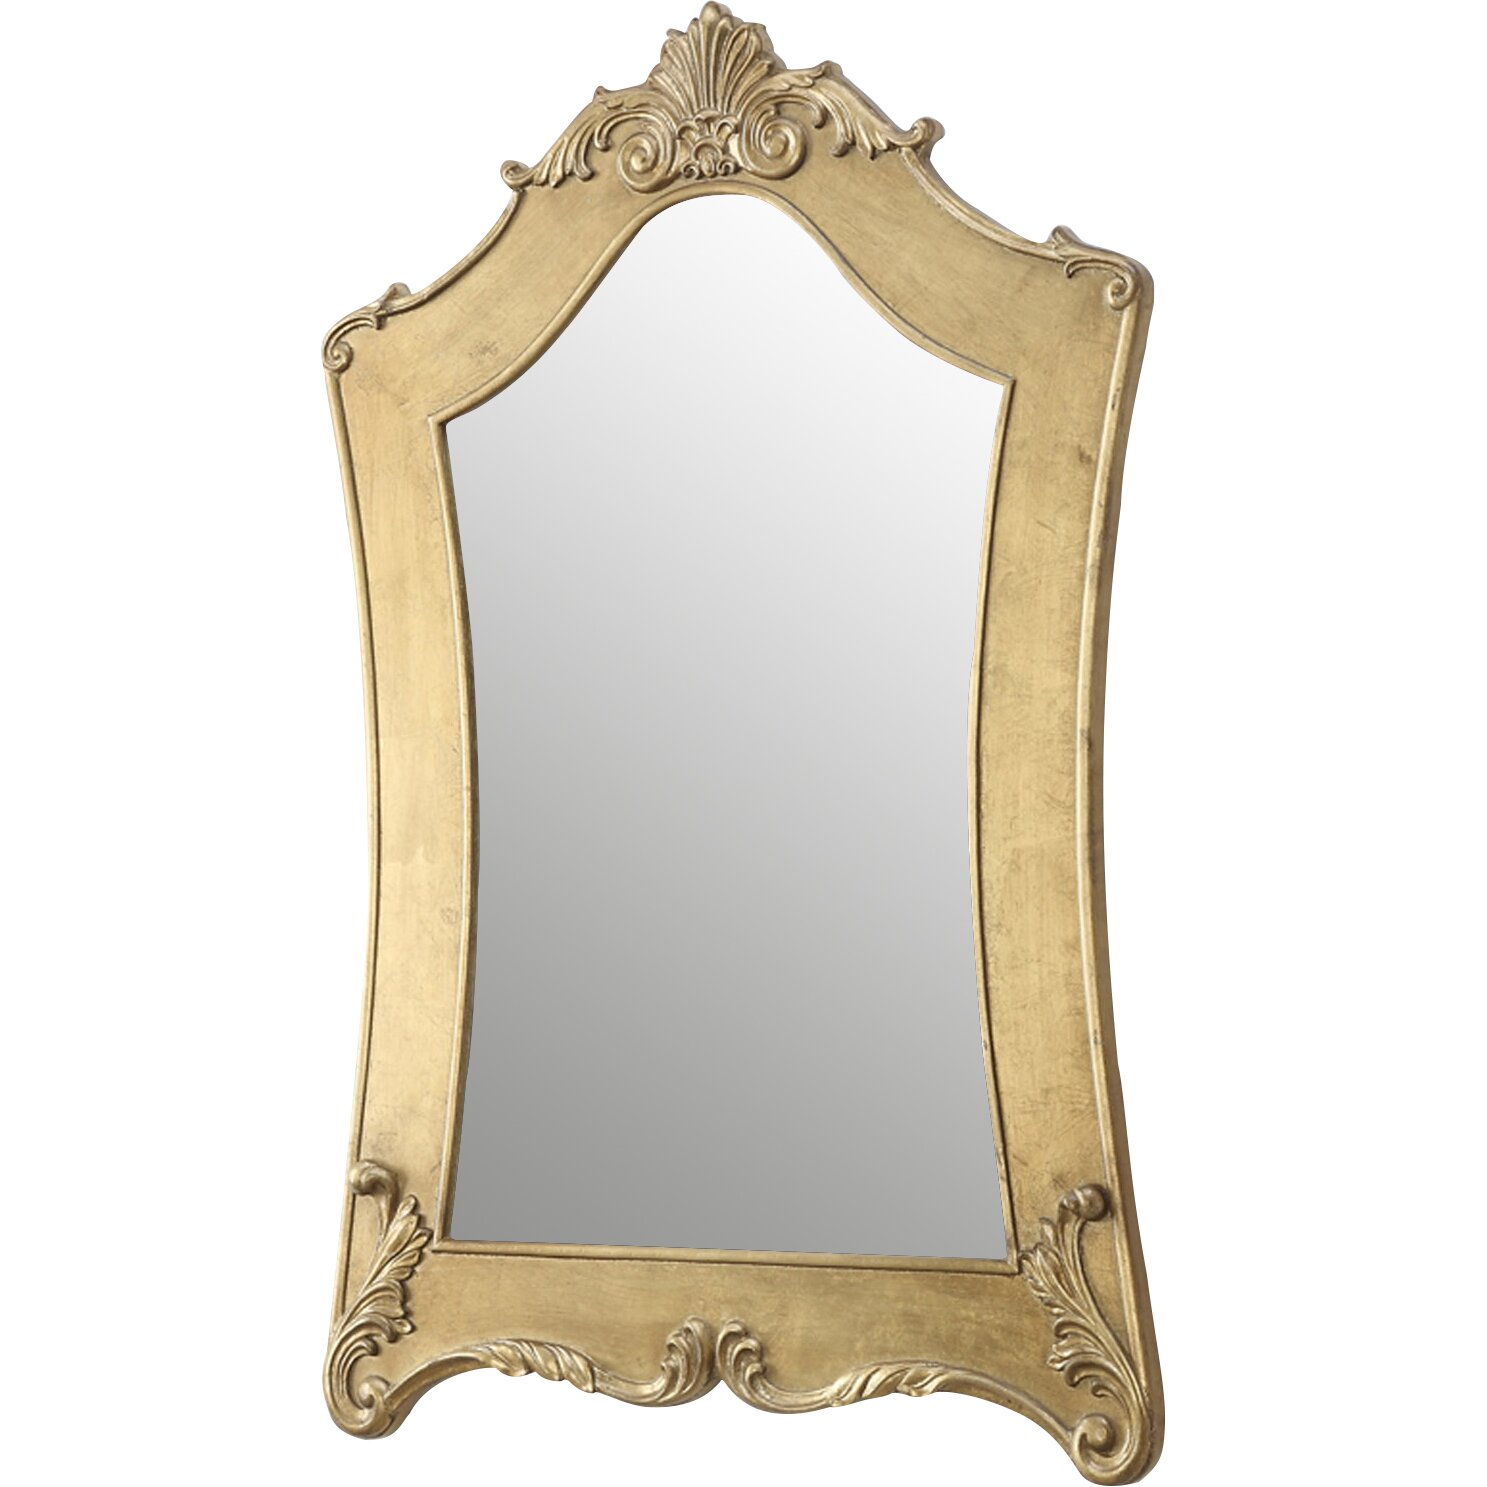 Innovative  Gold Coast Africa Product Information  FANTE REFLECTIONS WALL MIRROR